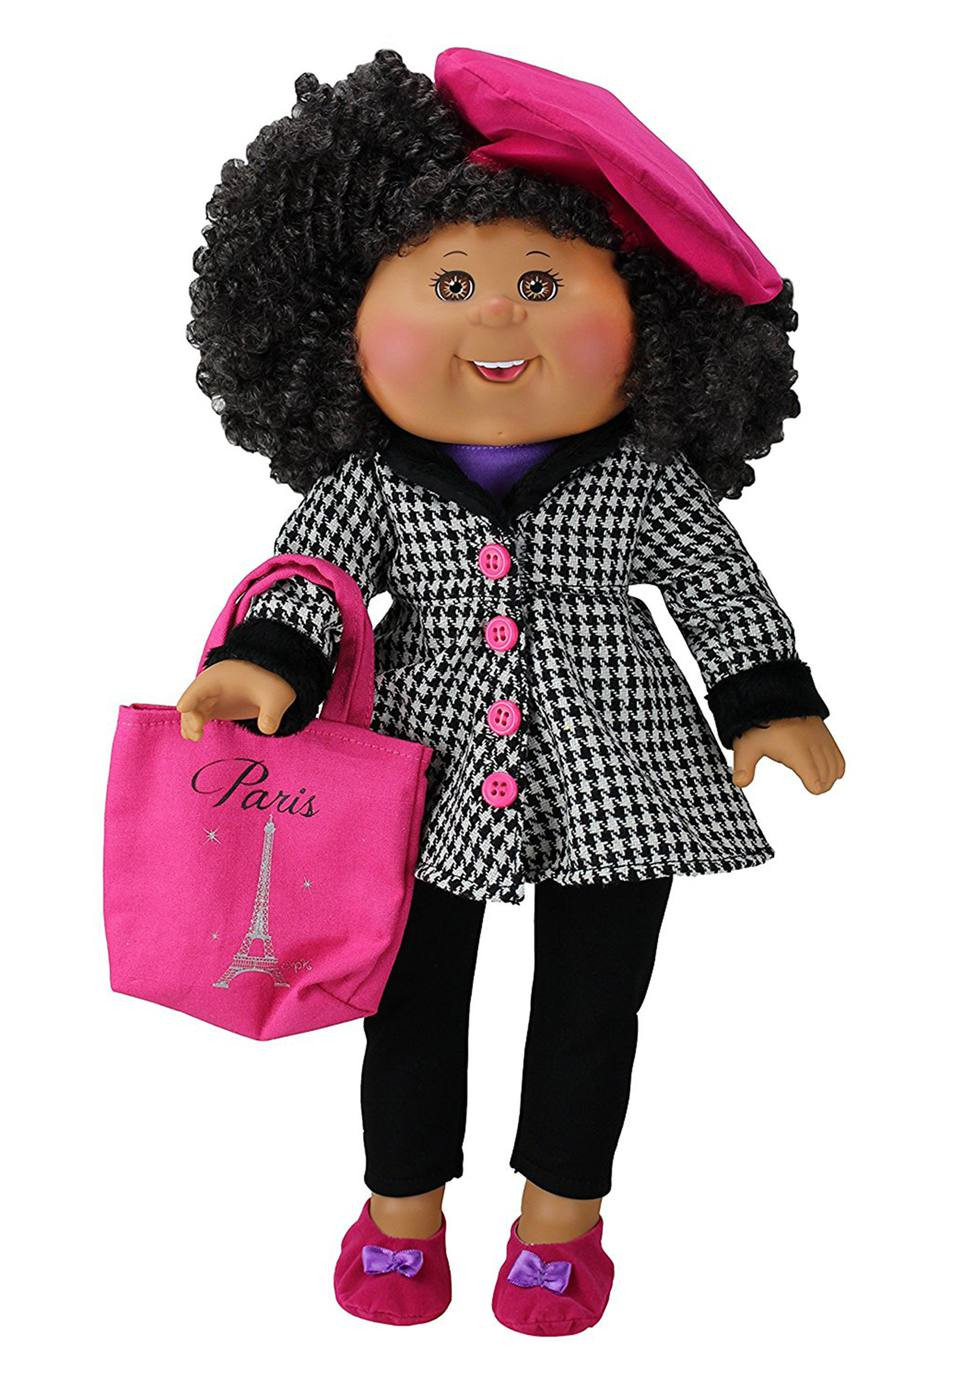 Cabbage Patch Doll Luxury Doll Profile All About Cabbage Patch Kids Of Superb 40 Models Cabbage Patch Doll